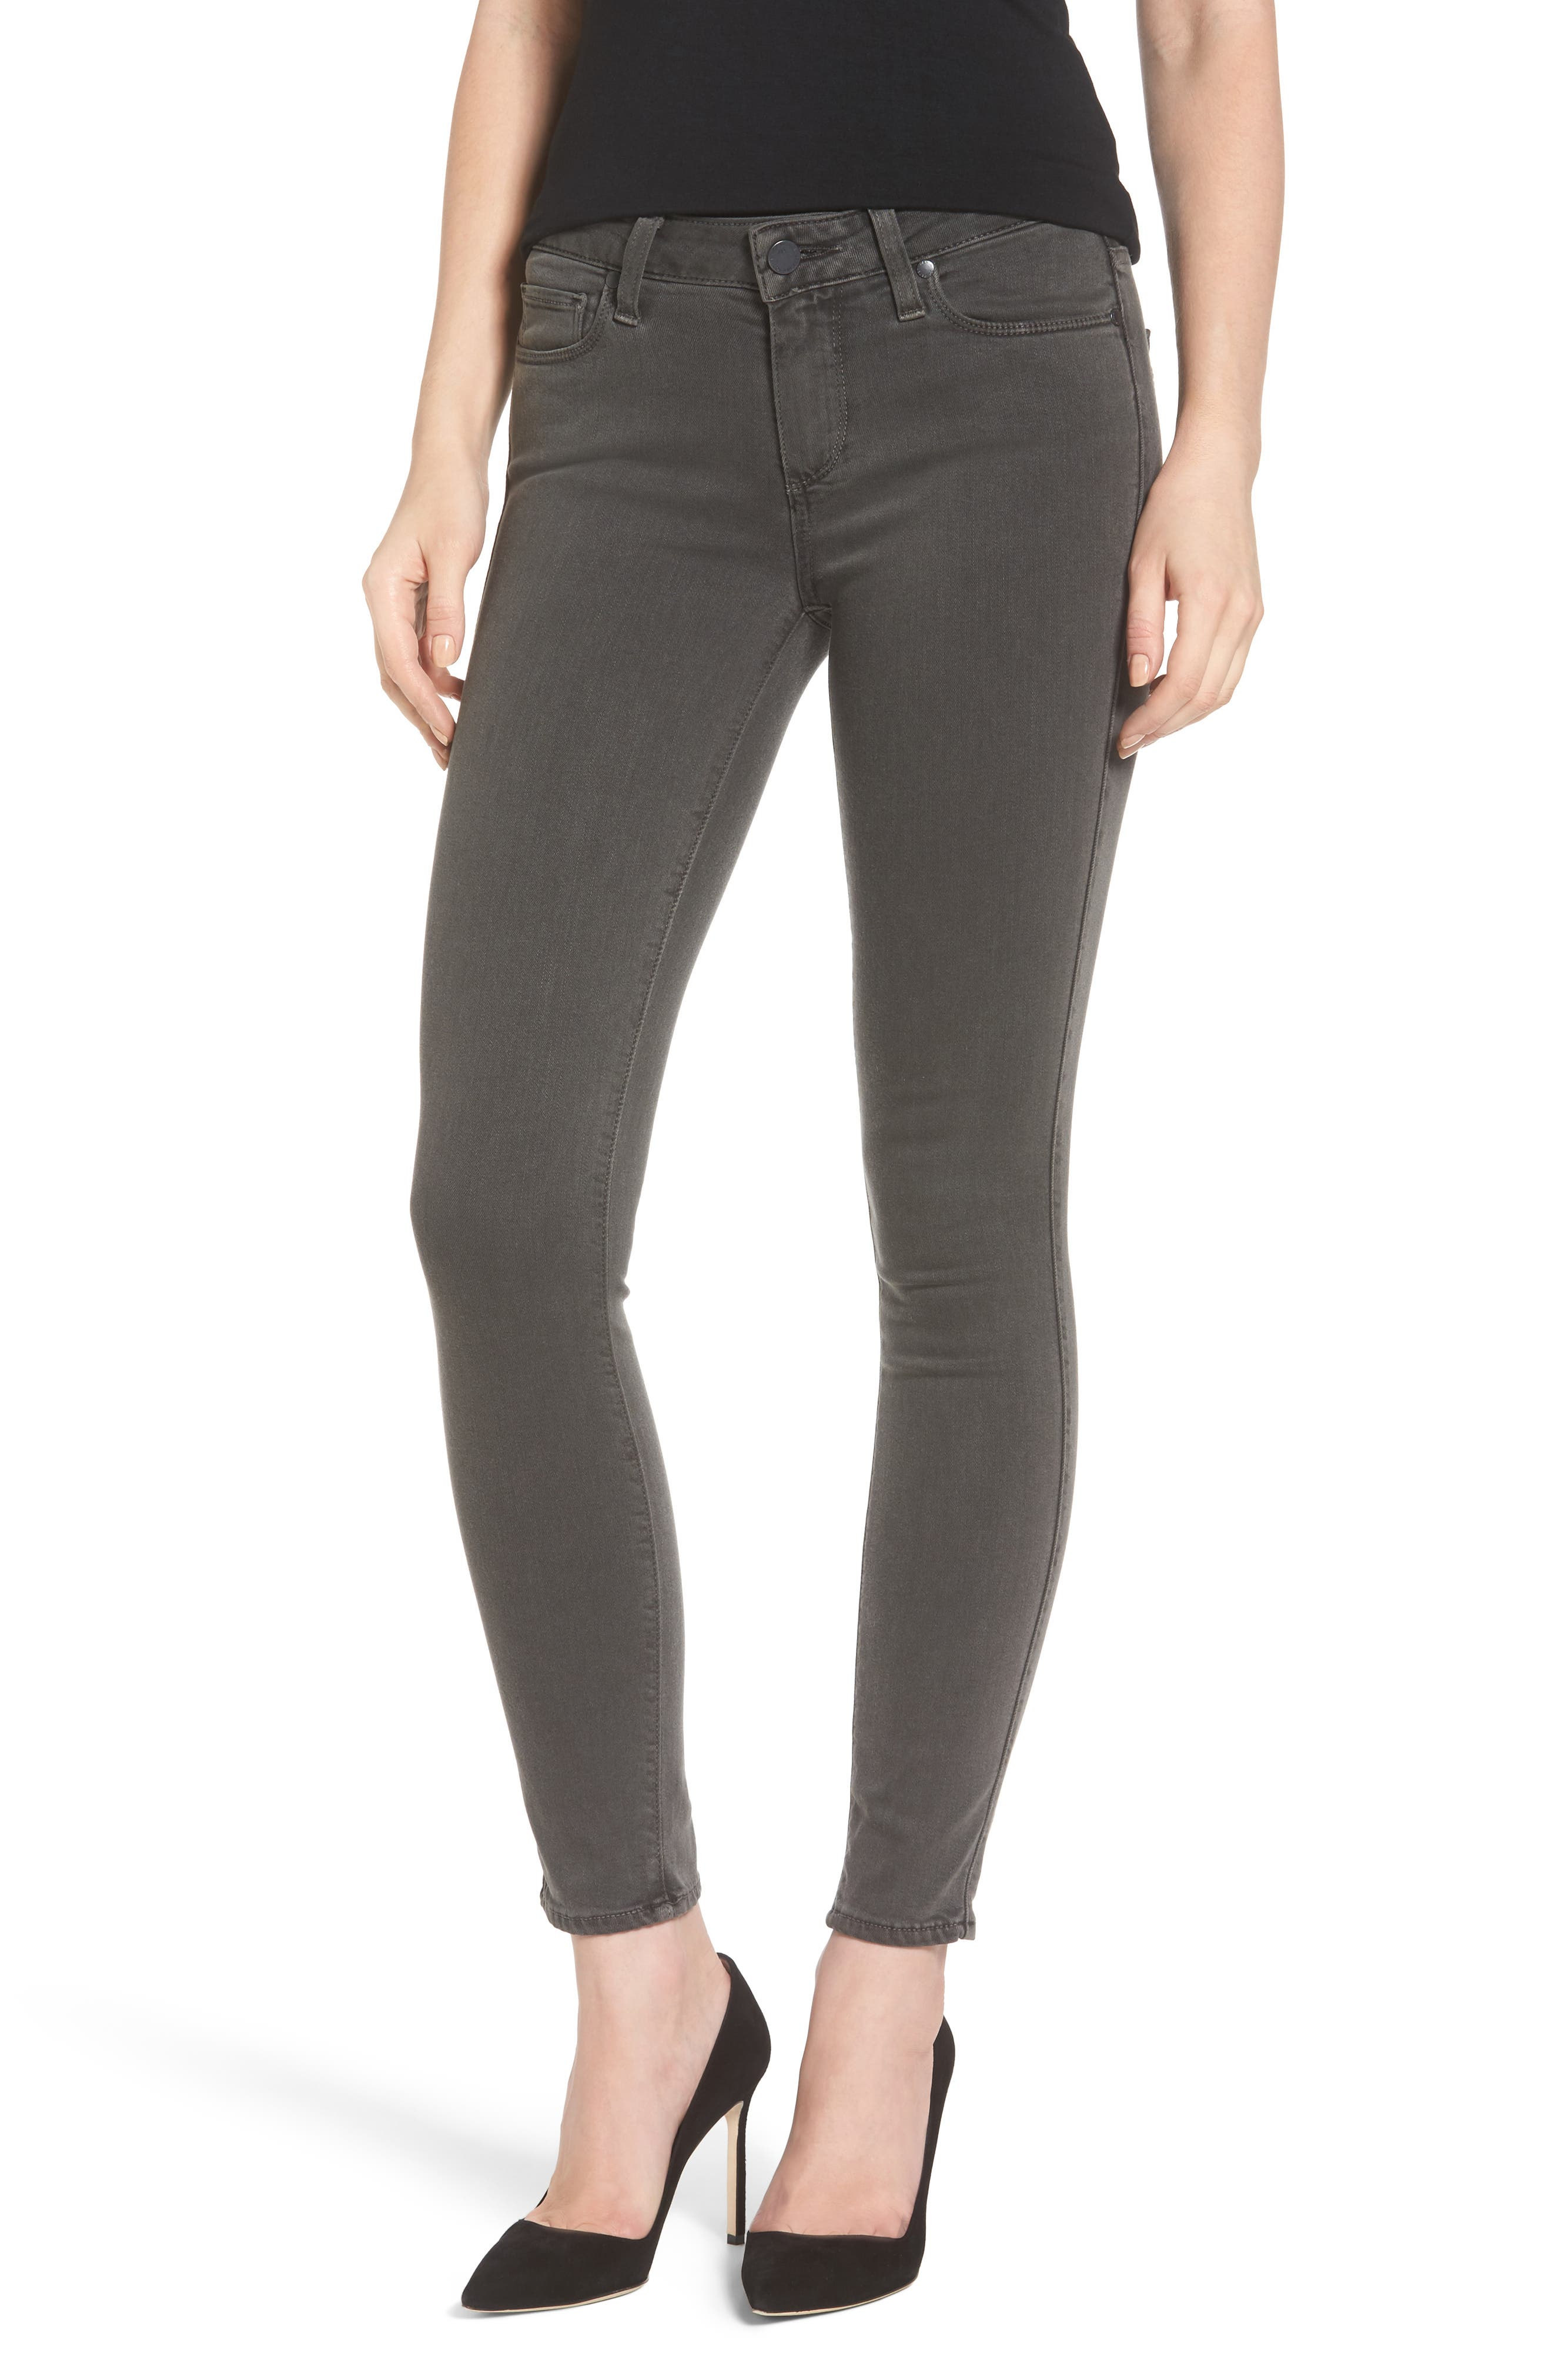 PAIGE Transcend - Verdugo Ankle Skinny Jeans, Main, color, 021